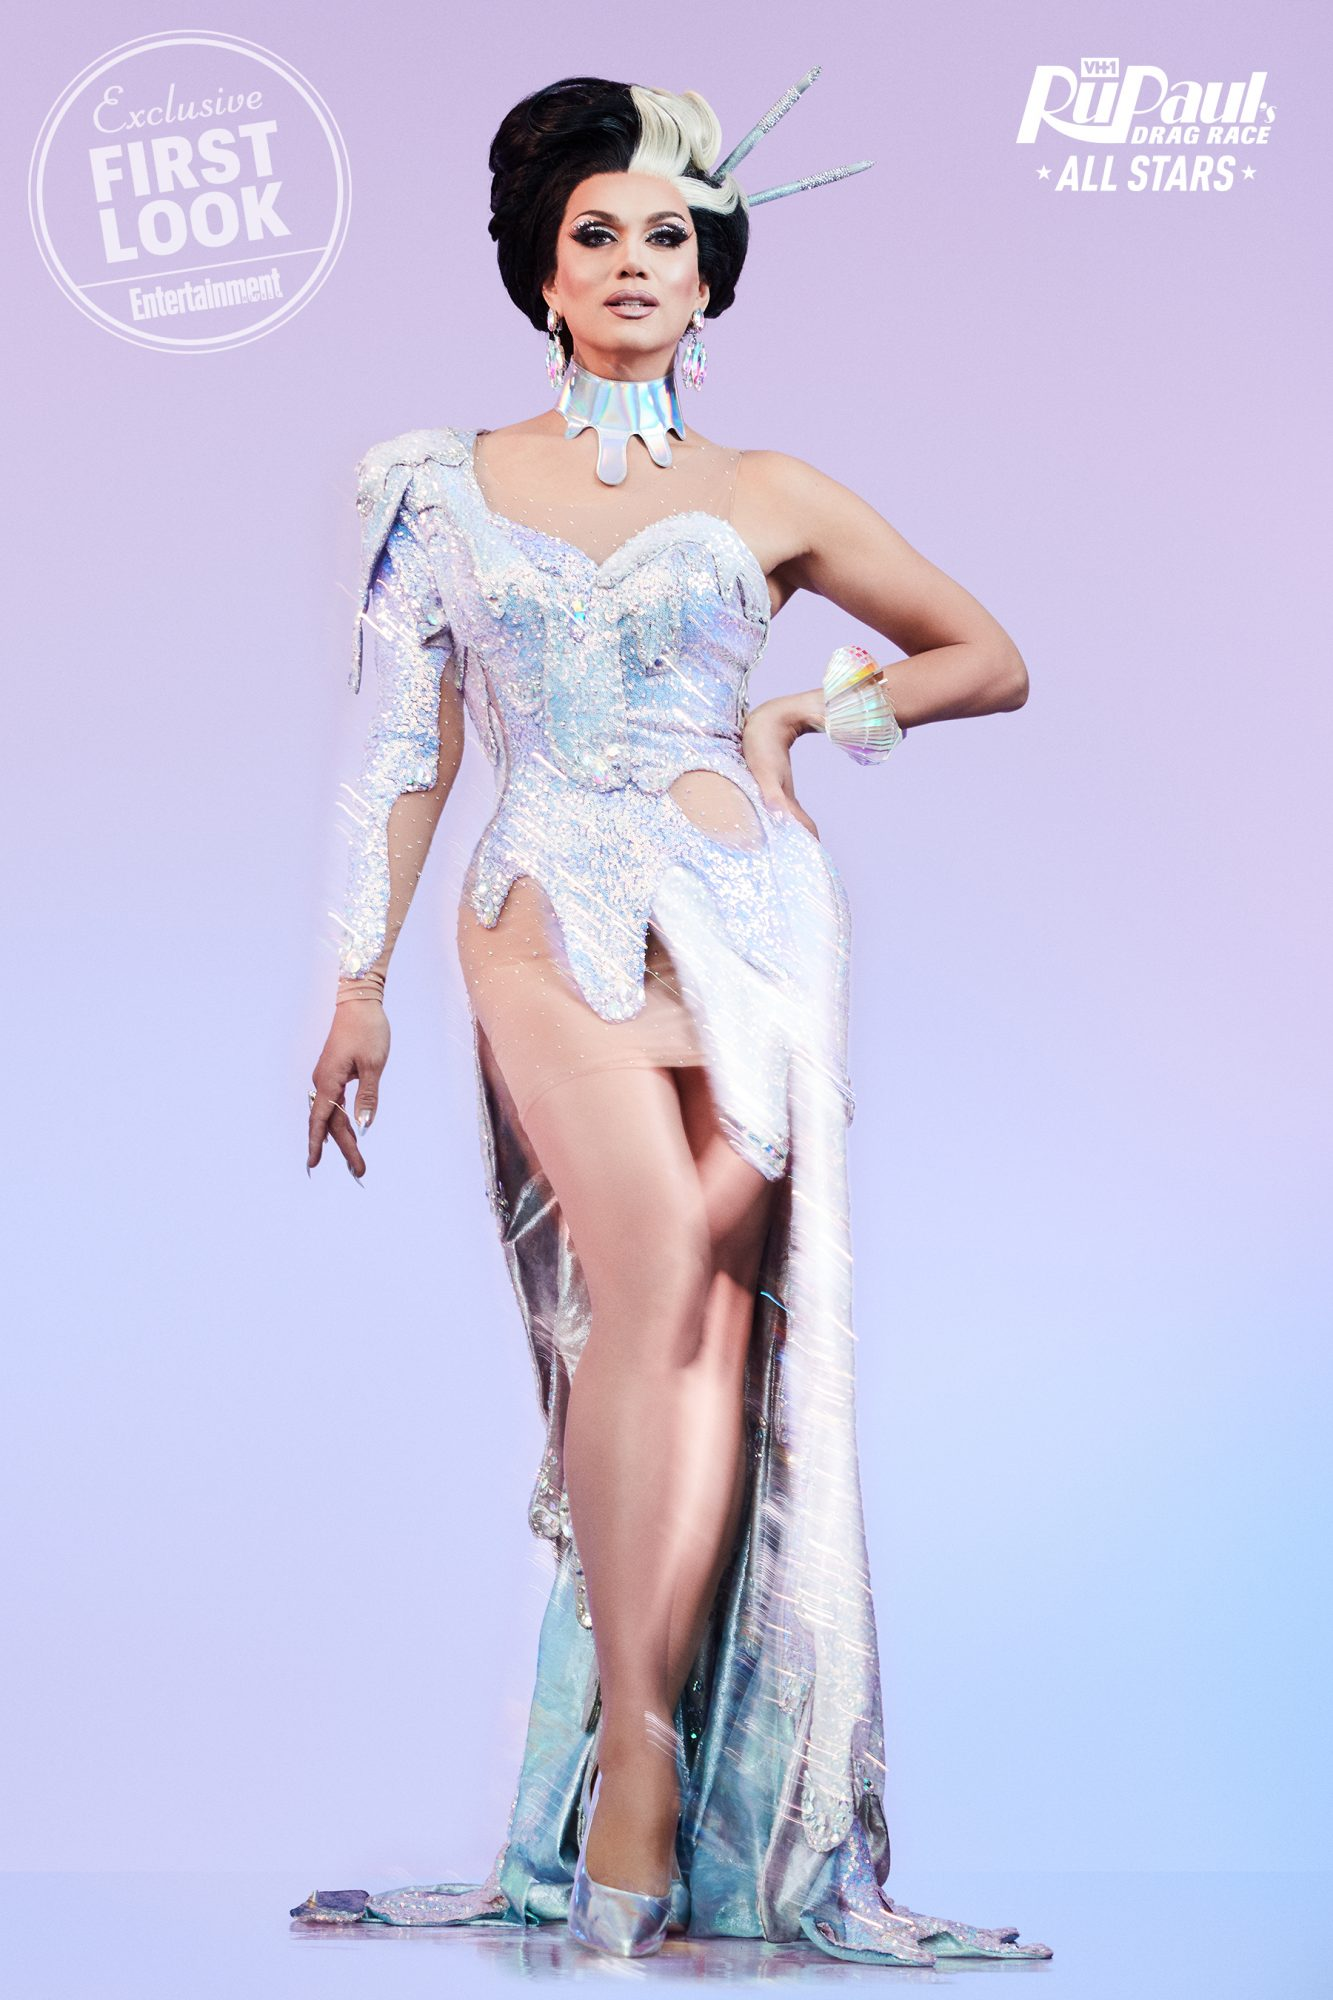 VH1_RPDR_AS4_digital_1800x2700_individual_07